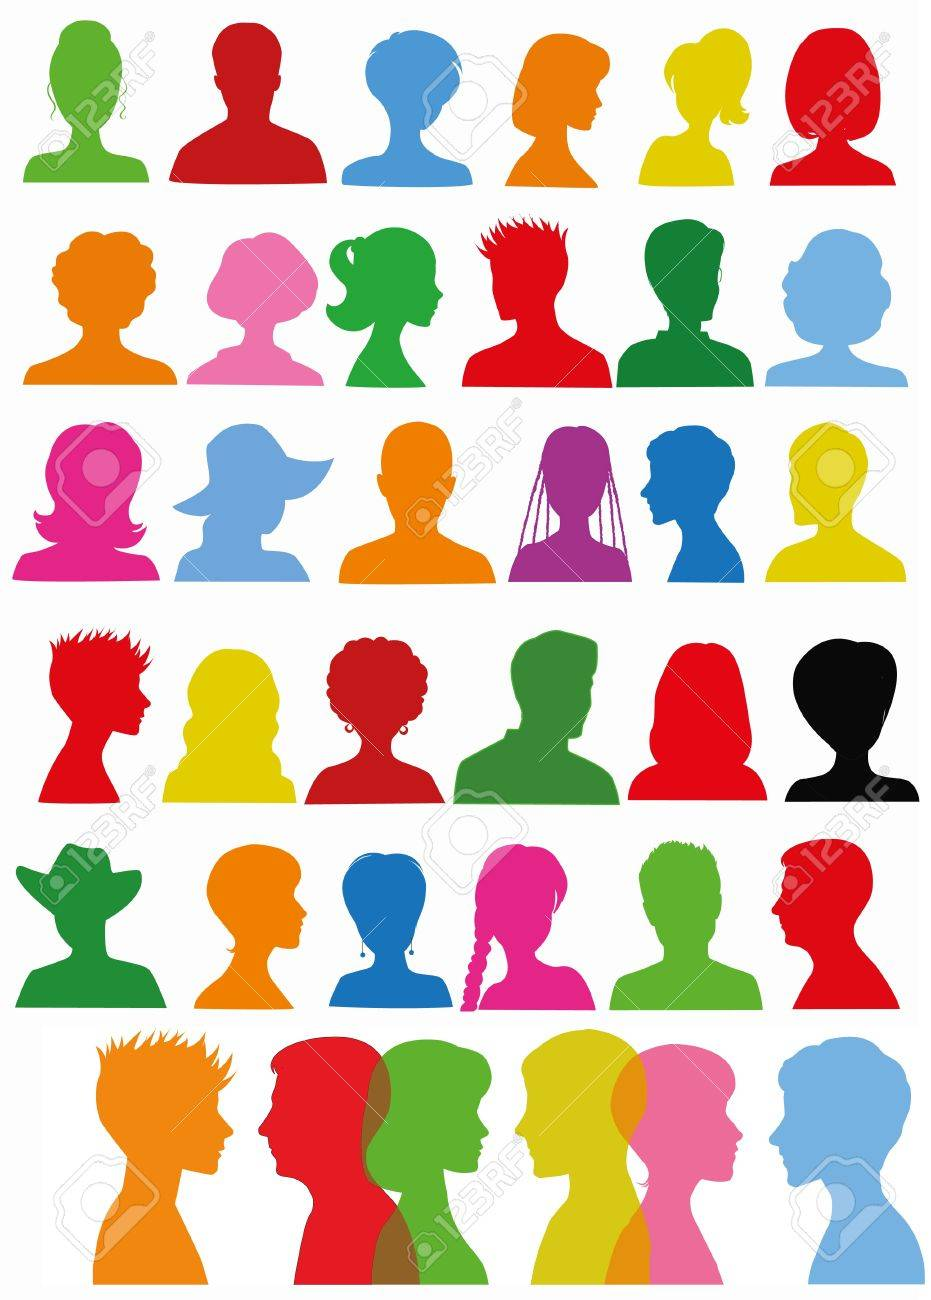 Colorful head silhouettes - 17596808